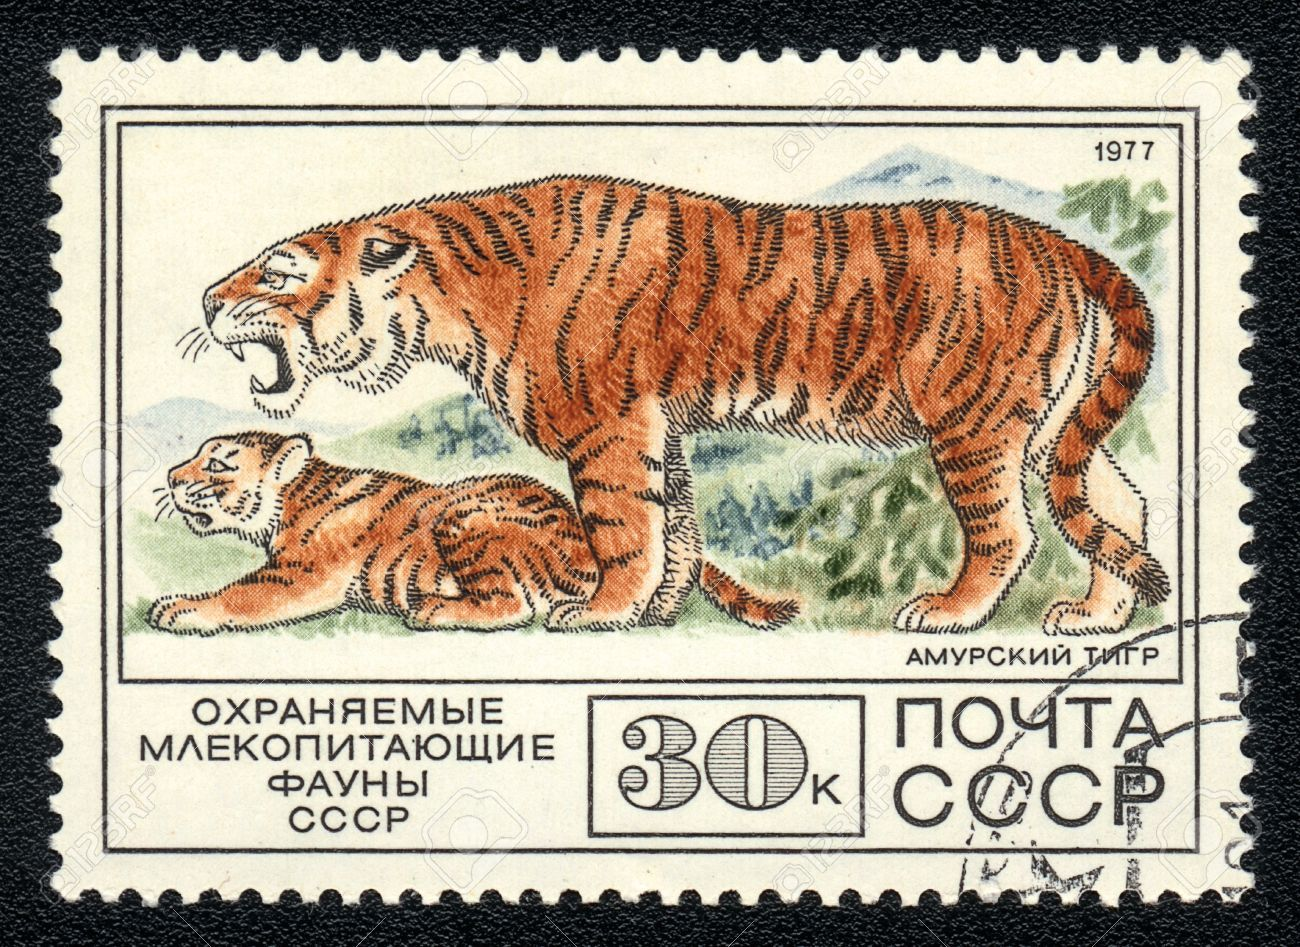 Pin by Jane Walden on RussiaPostage stamps Cat stamp